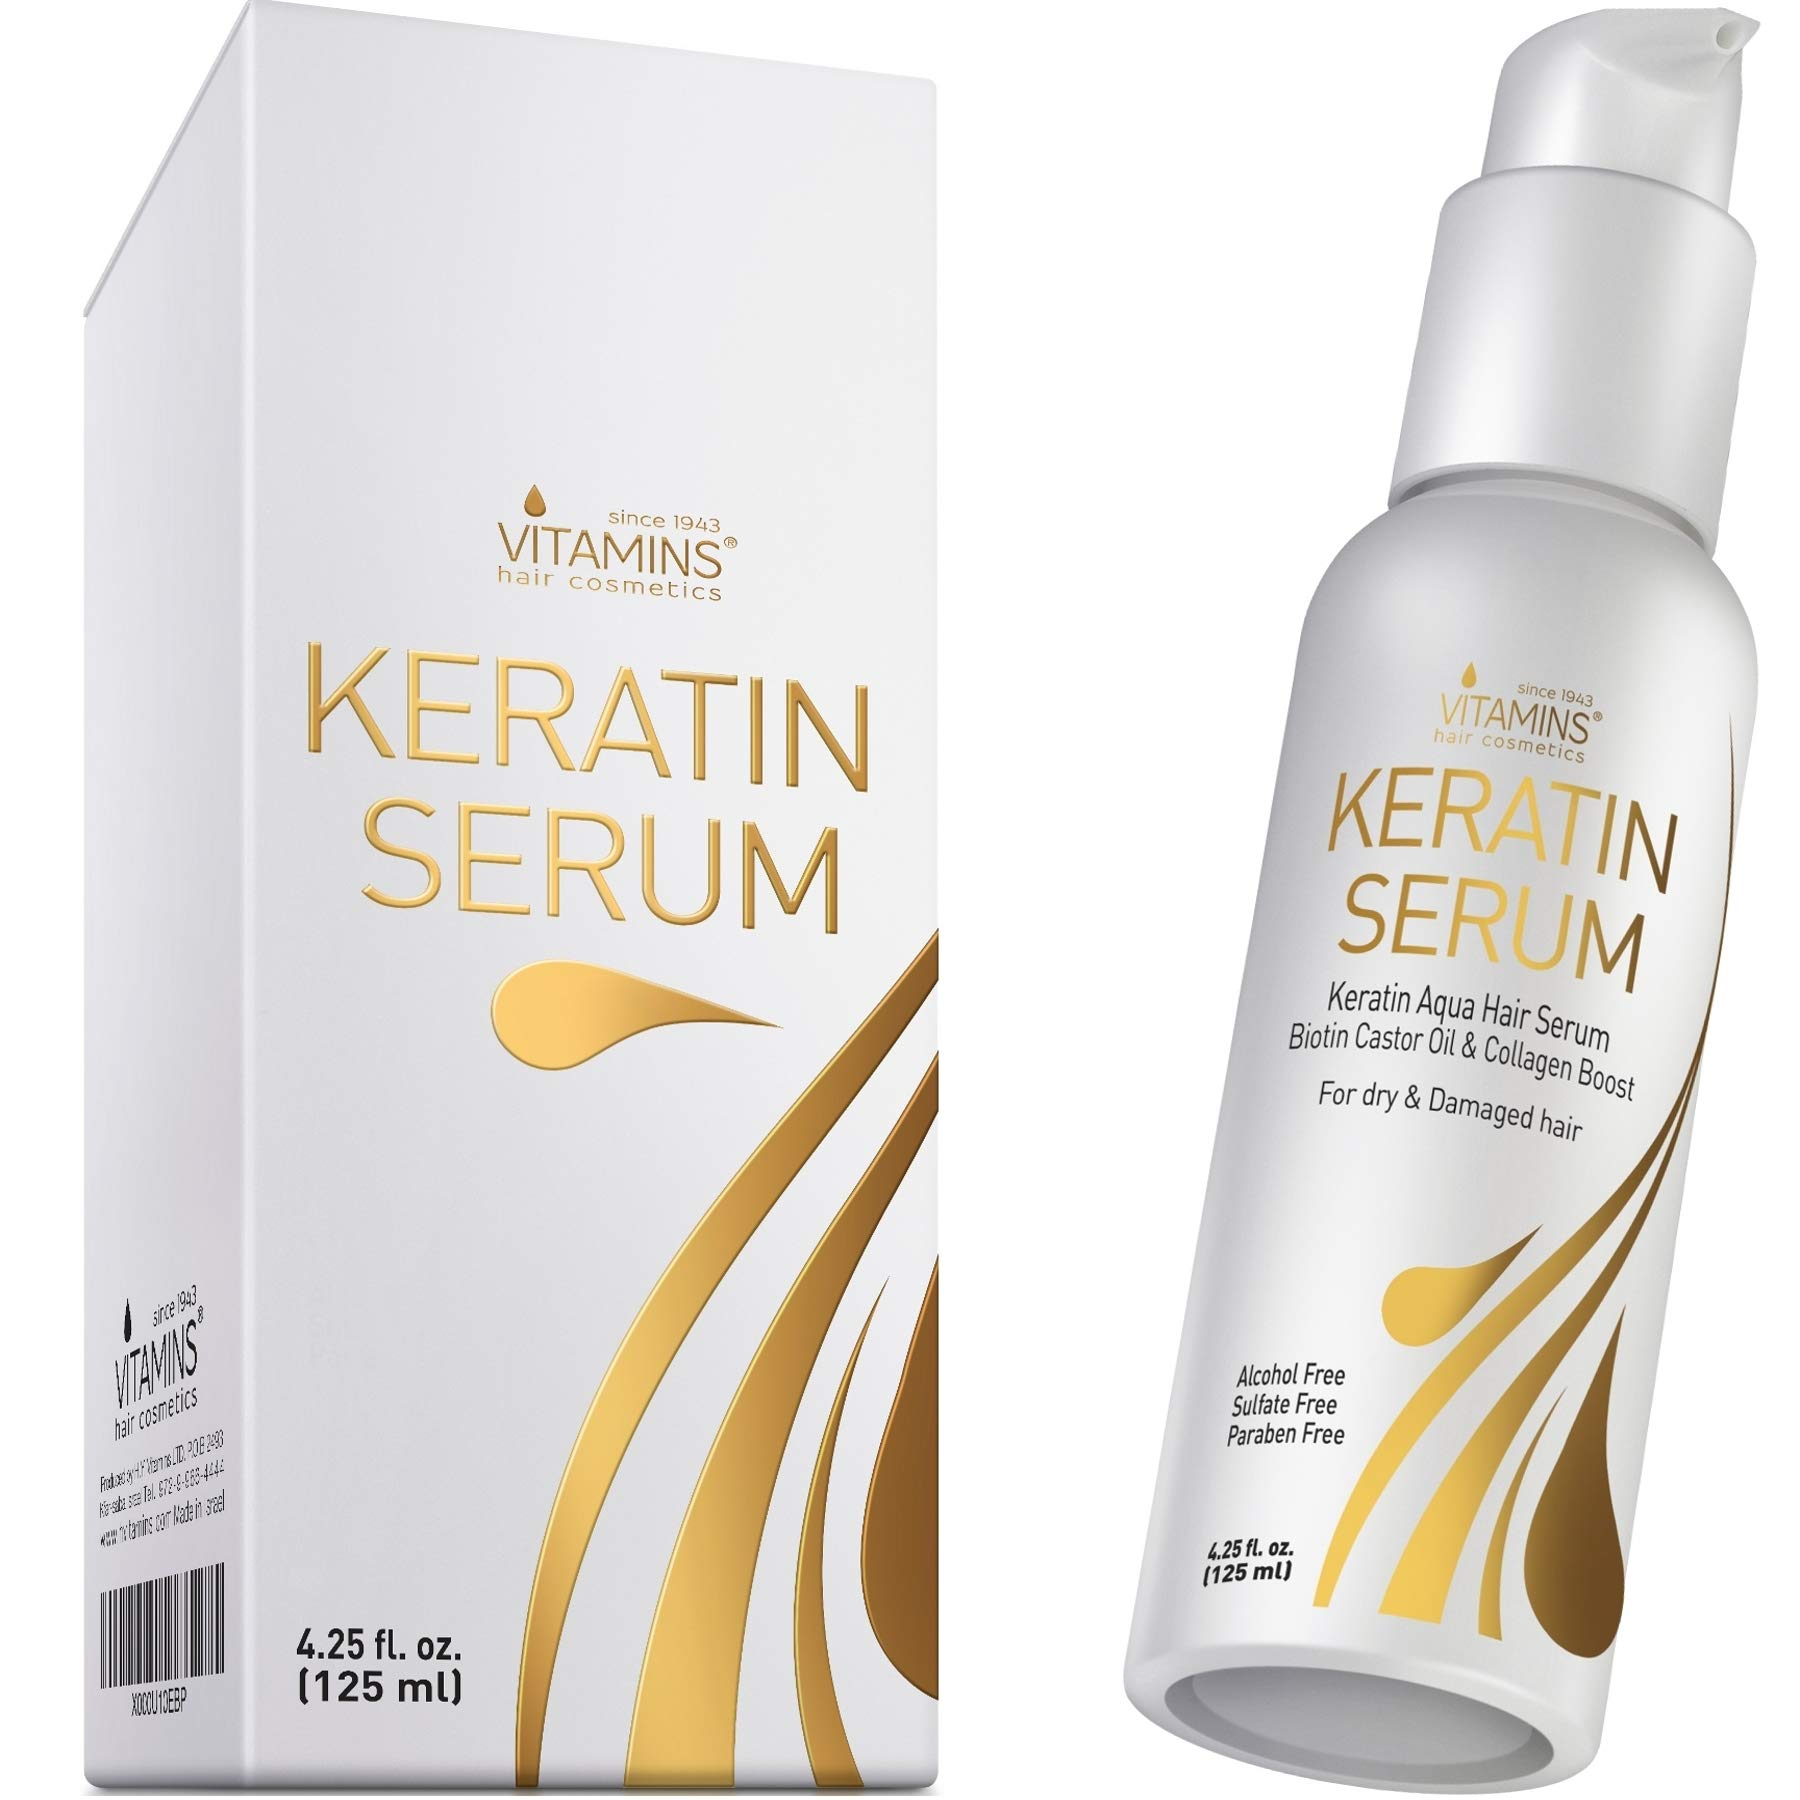 Vitamins Keratin Protein Hair Serum - Biotin and Collagen Anti Frizz Treatment with Castor Oil Softens and Repairs Frizzy Dry Damaged Hair - Heat Protectant with Shine and Gloss 4.25 Oz